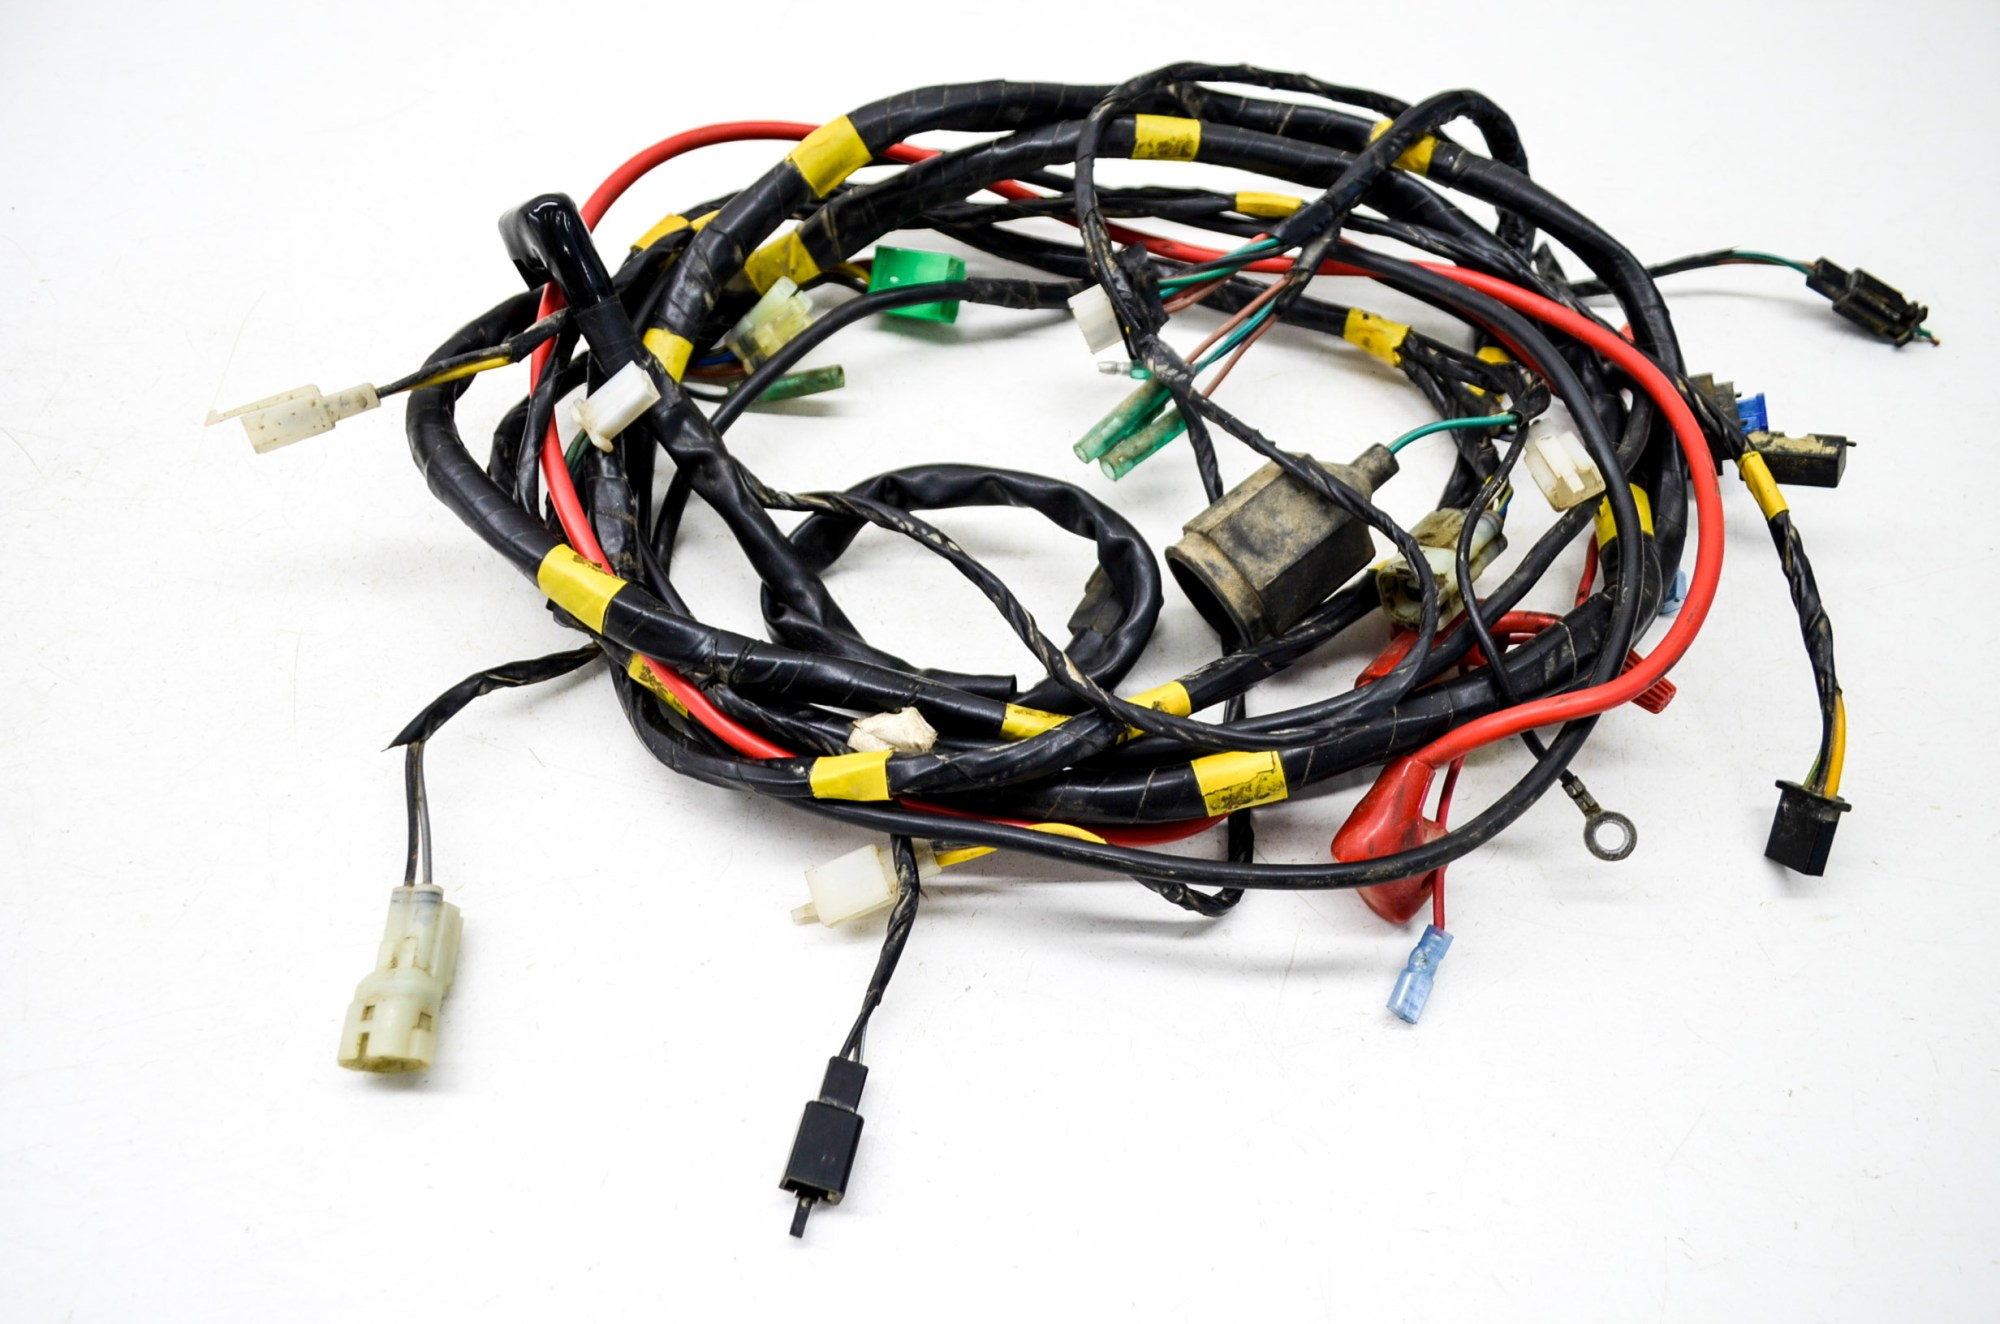 hight resolution of 09 polaris rzr 170 wire harness electrical wiring